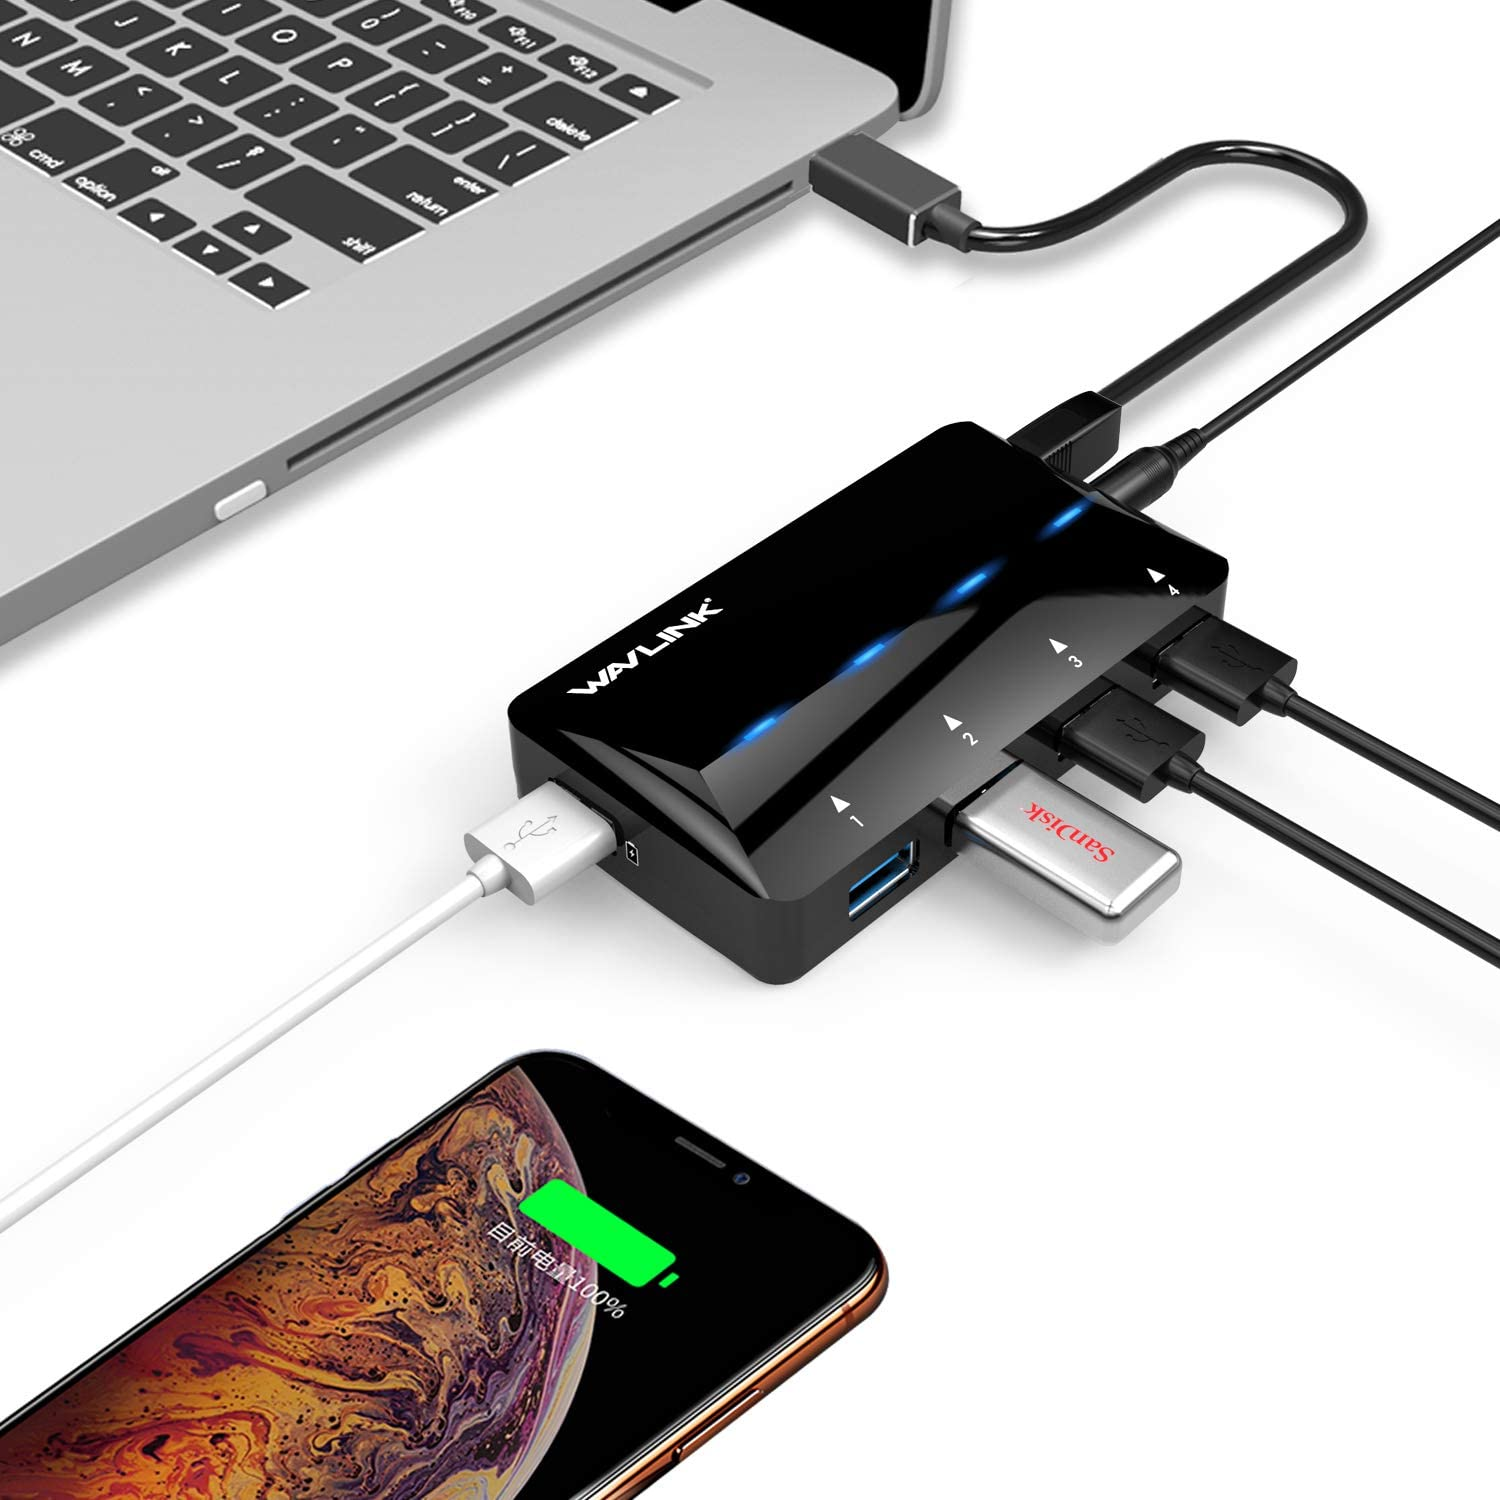 Wavlink Powered USB 3.0 Hub, 4-Port USB 3.0 Data Hub with One Smart Charging Port Up to 2.4A (BC1.2/iPad/iPhone/Tablet), with 12V/2A Power Adapter, LED Indicator, Hot Swapping, Plug and Play